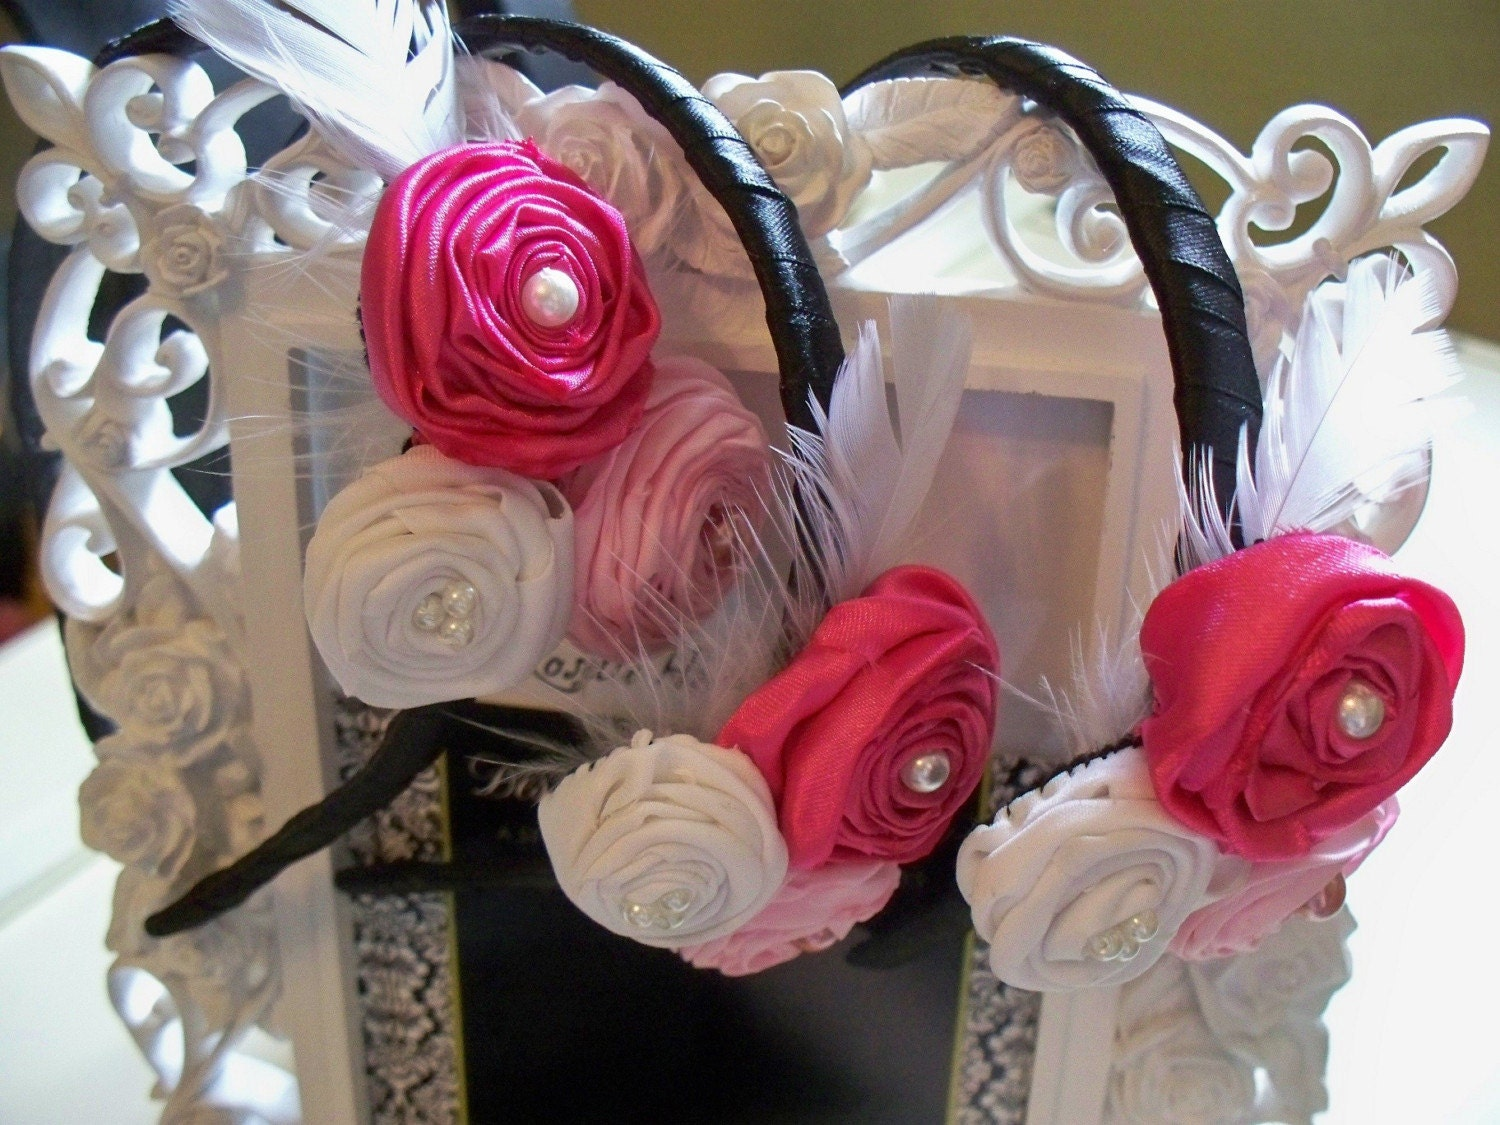 Fabulous Satin Triple Rosette Headband in Hot Pink, Pale Pink and White with Feather on Black Satin Wrapped Headband - Fits Girls Teens Women - Flowergirl Wedding Special Occasion Couture